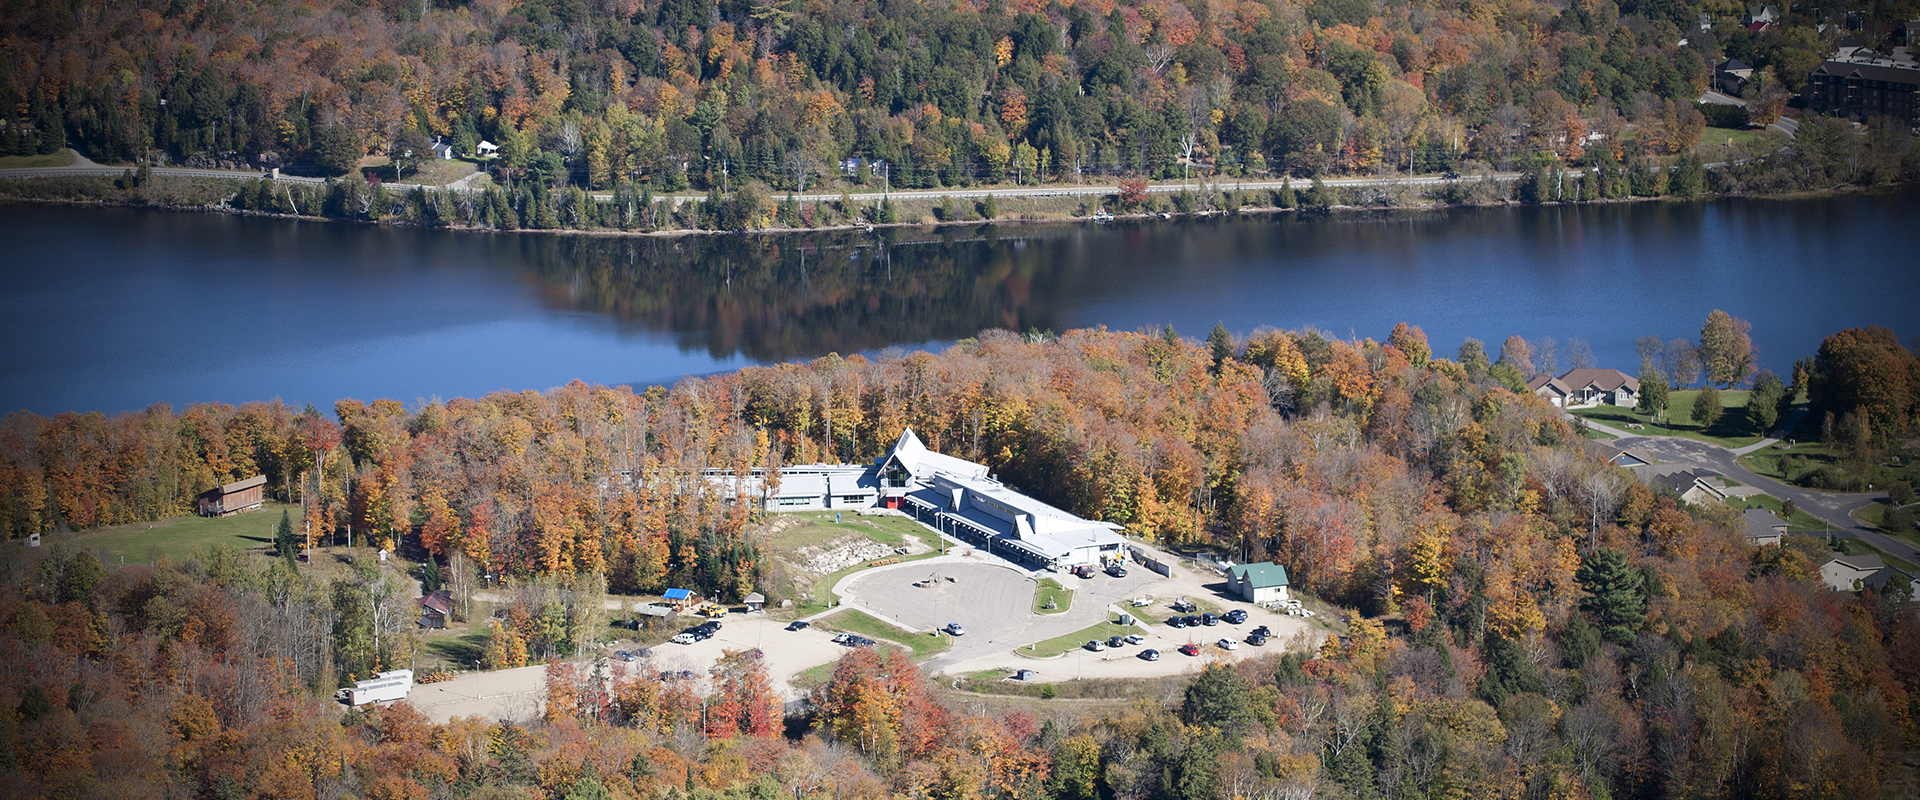 Haliburton Campus